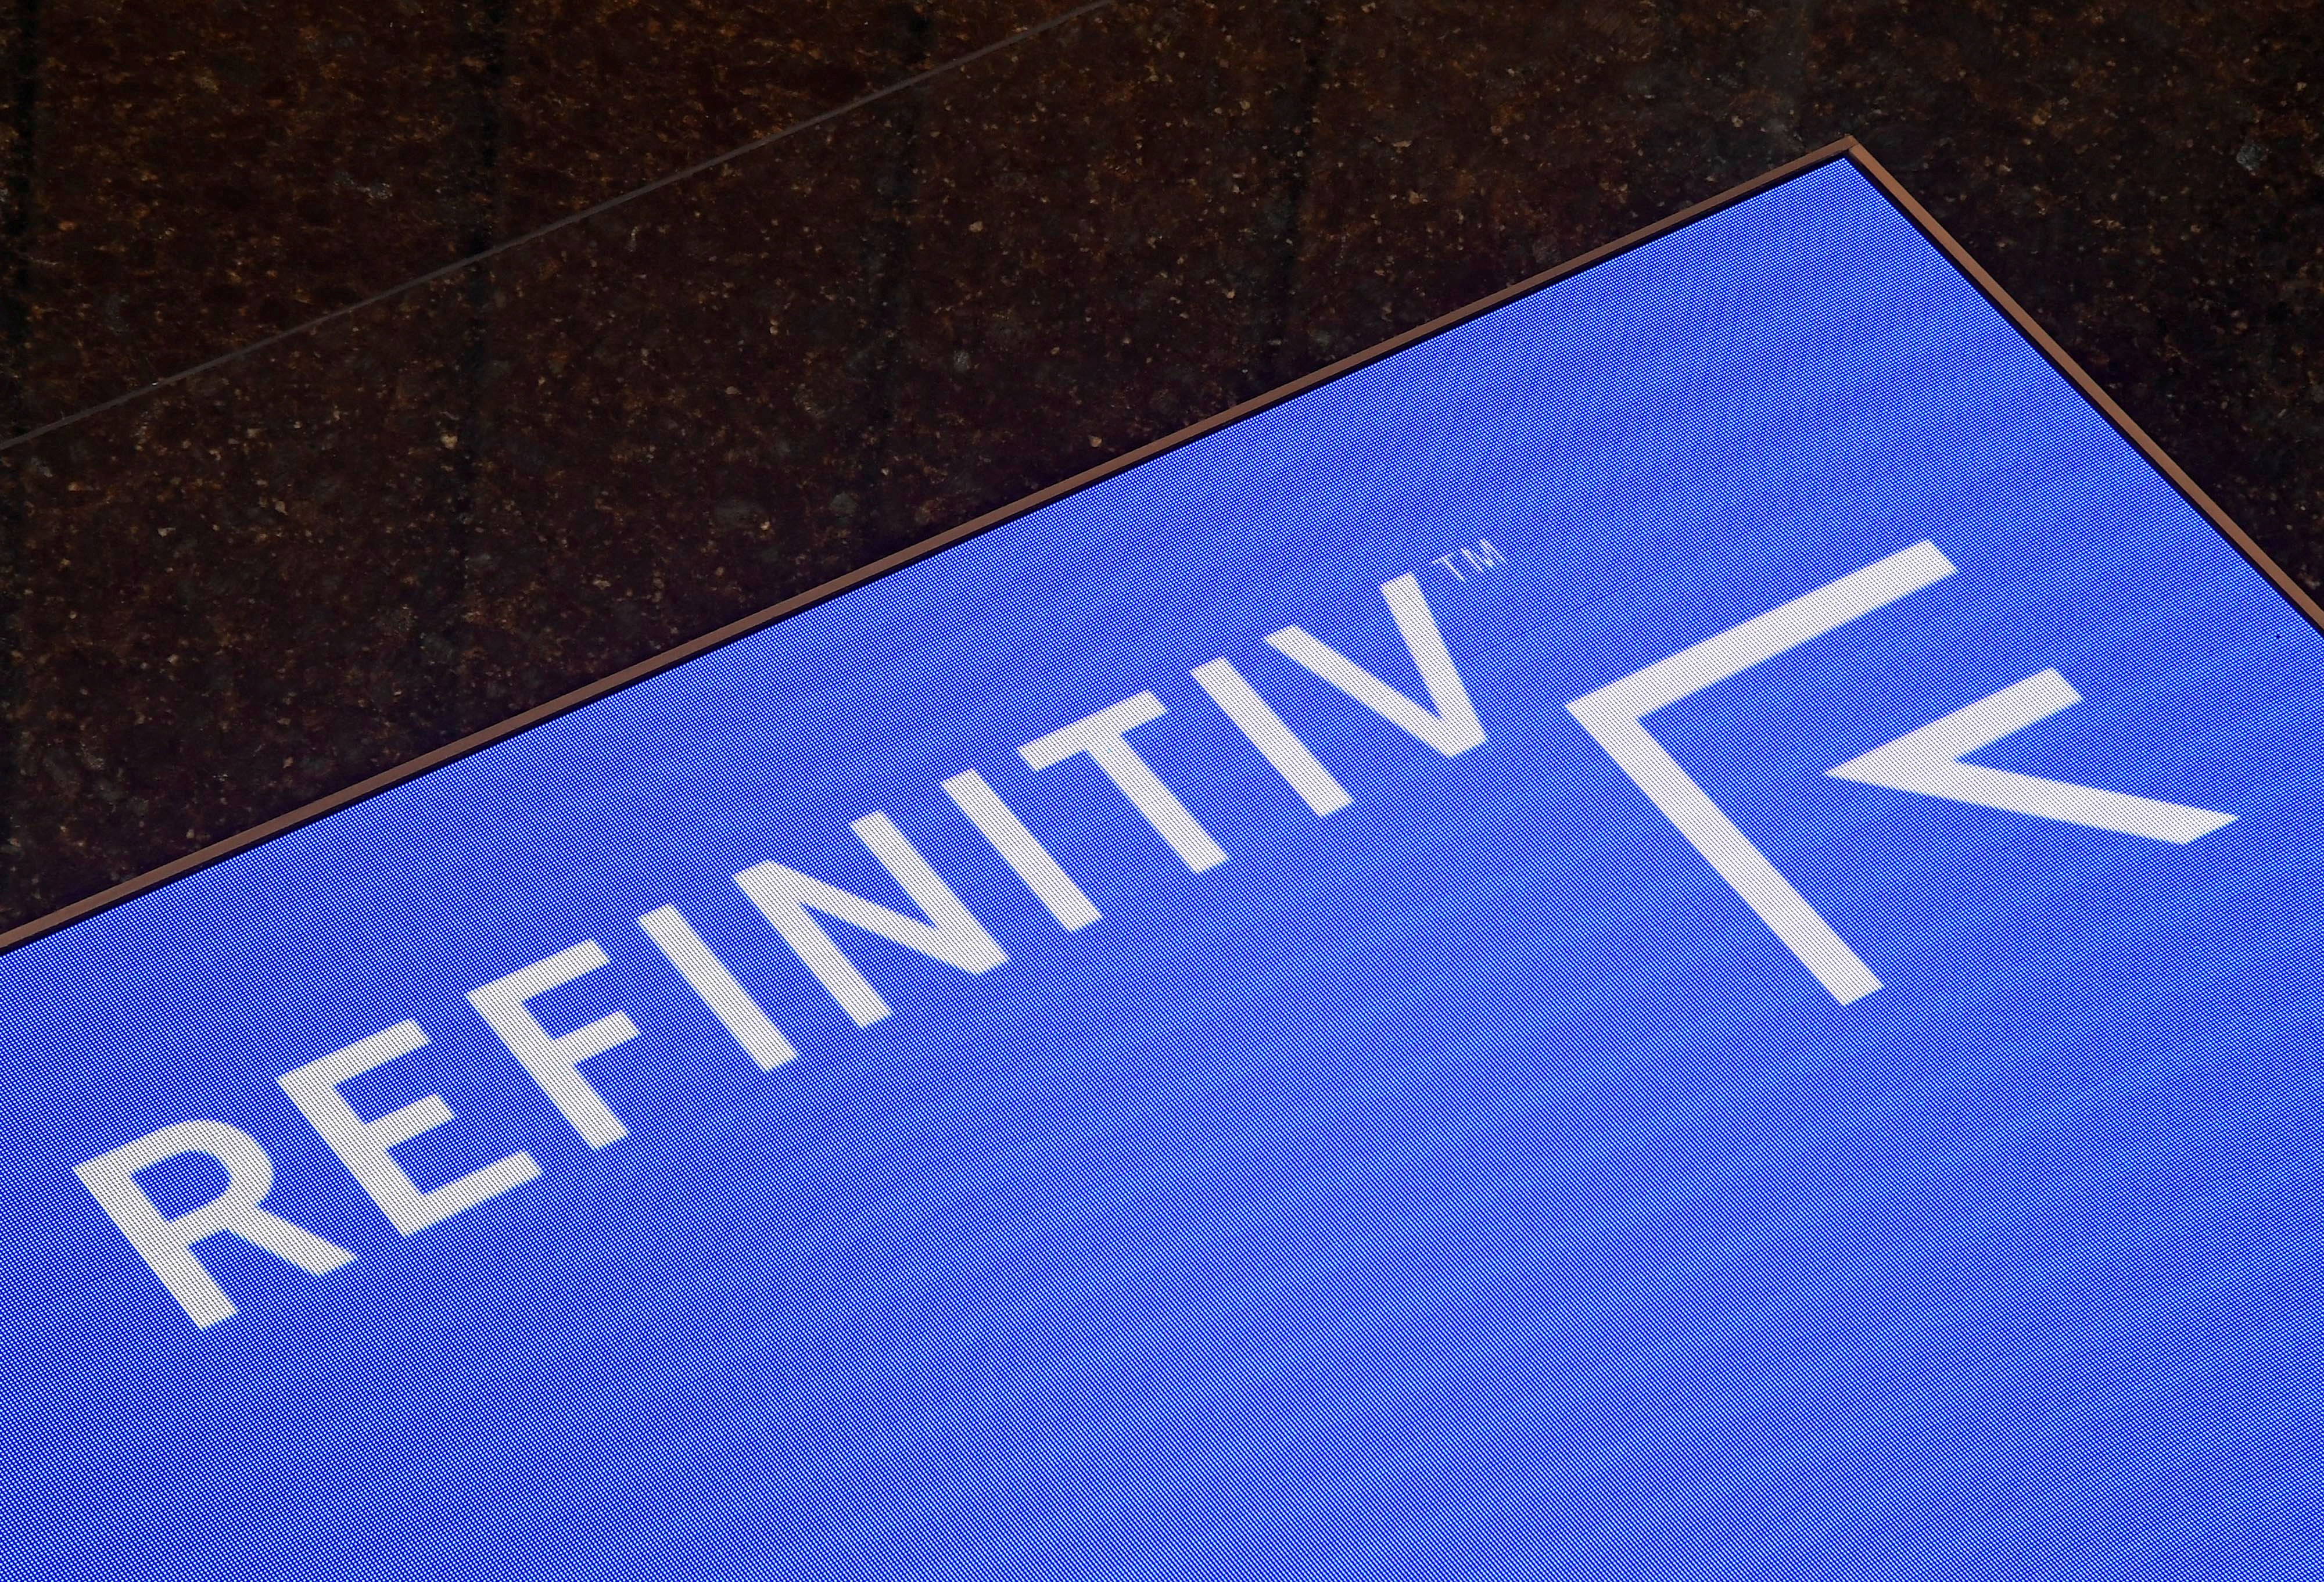 The Refinitiv logo is seen on a screen in offices in Canary Wharf in London, Britain August 1, 2019. REUTERS/Toby Melville